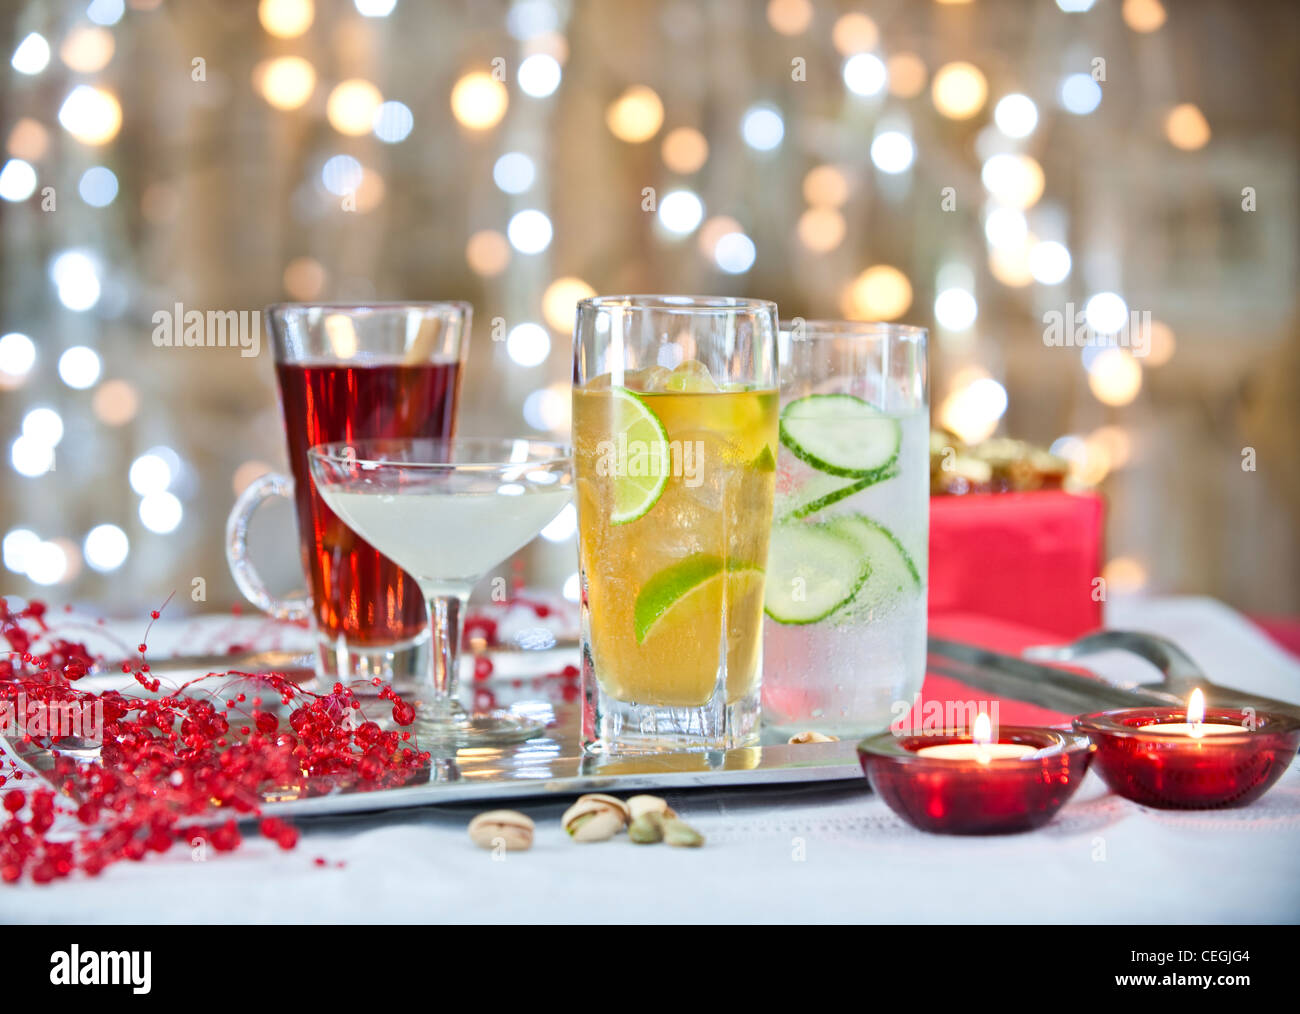 Christmas Cocktail Drinks 2 - Stock Image